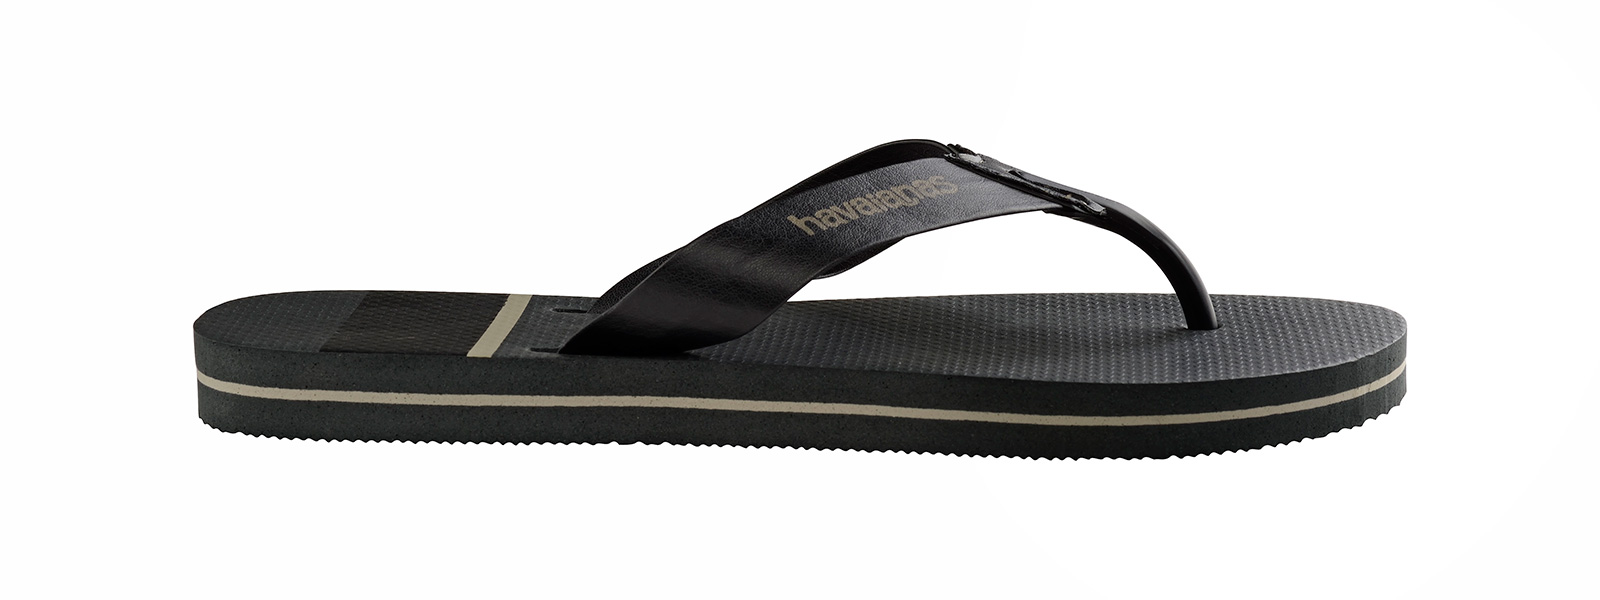 ... Flip-Flops - Havaianas Urban Craft Dark Grey ...